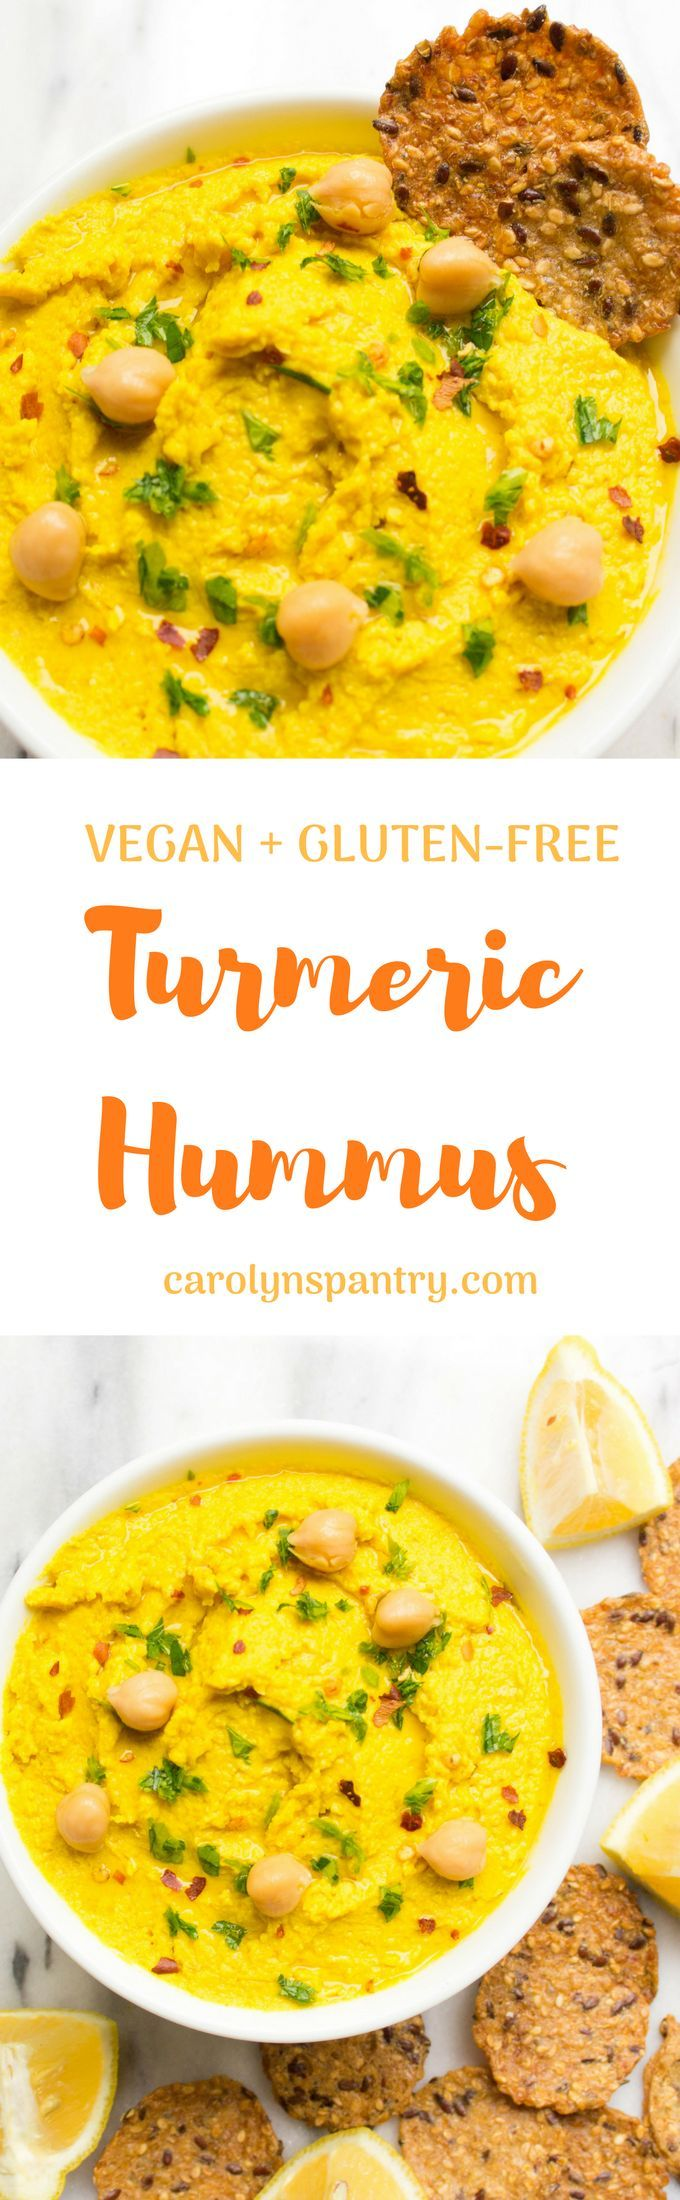 This Turmeric Hummus recipe is THE easiest and most delicious thing you could possibly eat! So perfect for buddha bowls, salads, and avocado toasts.